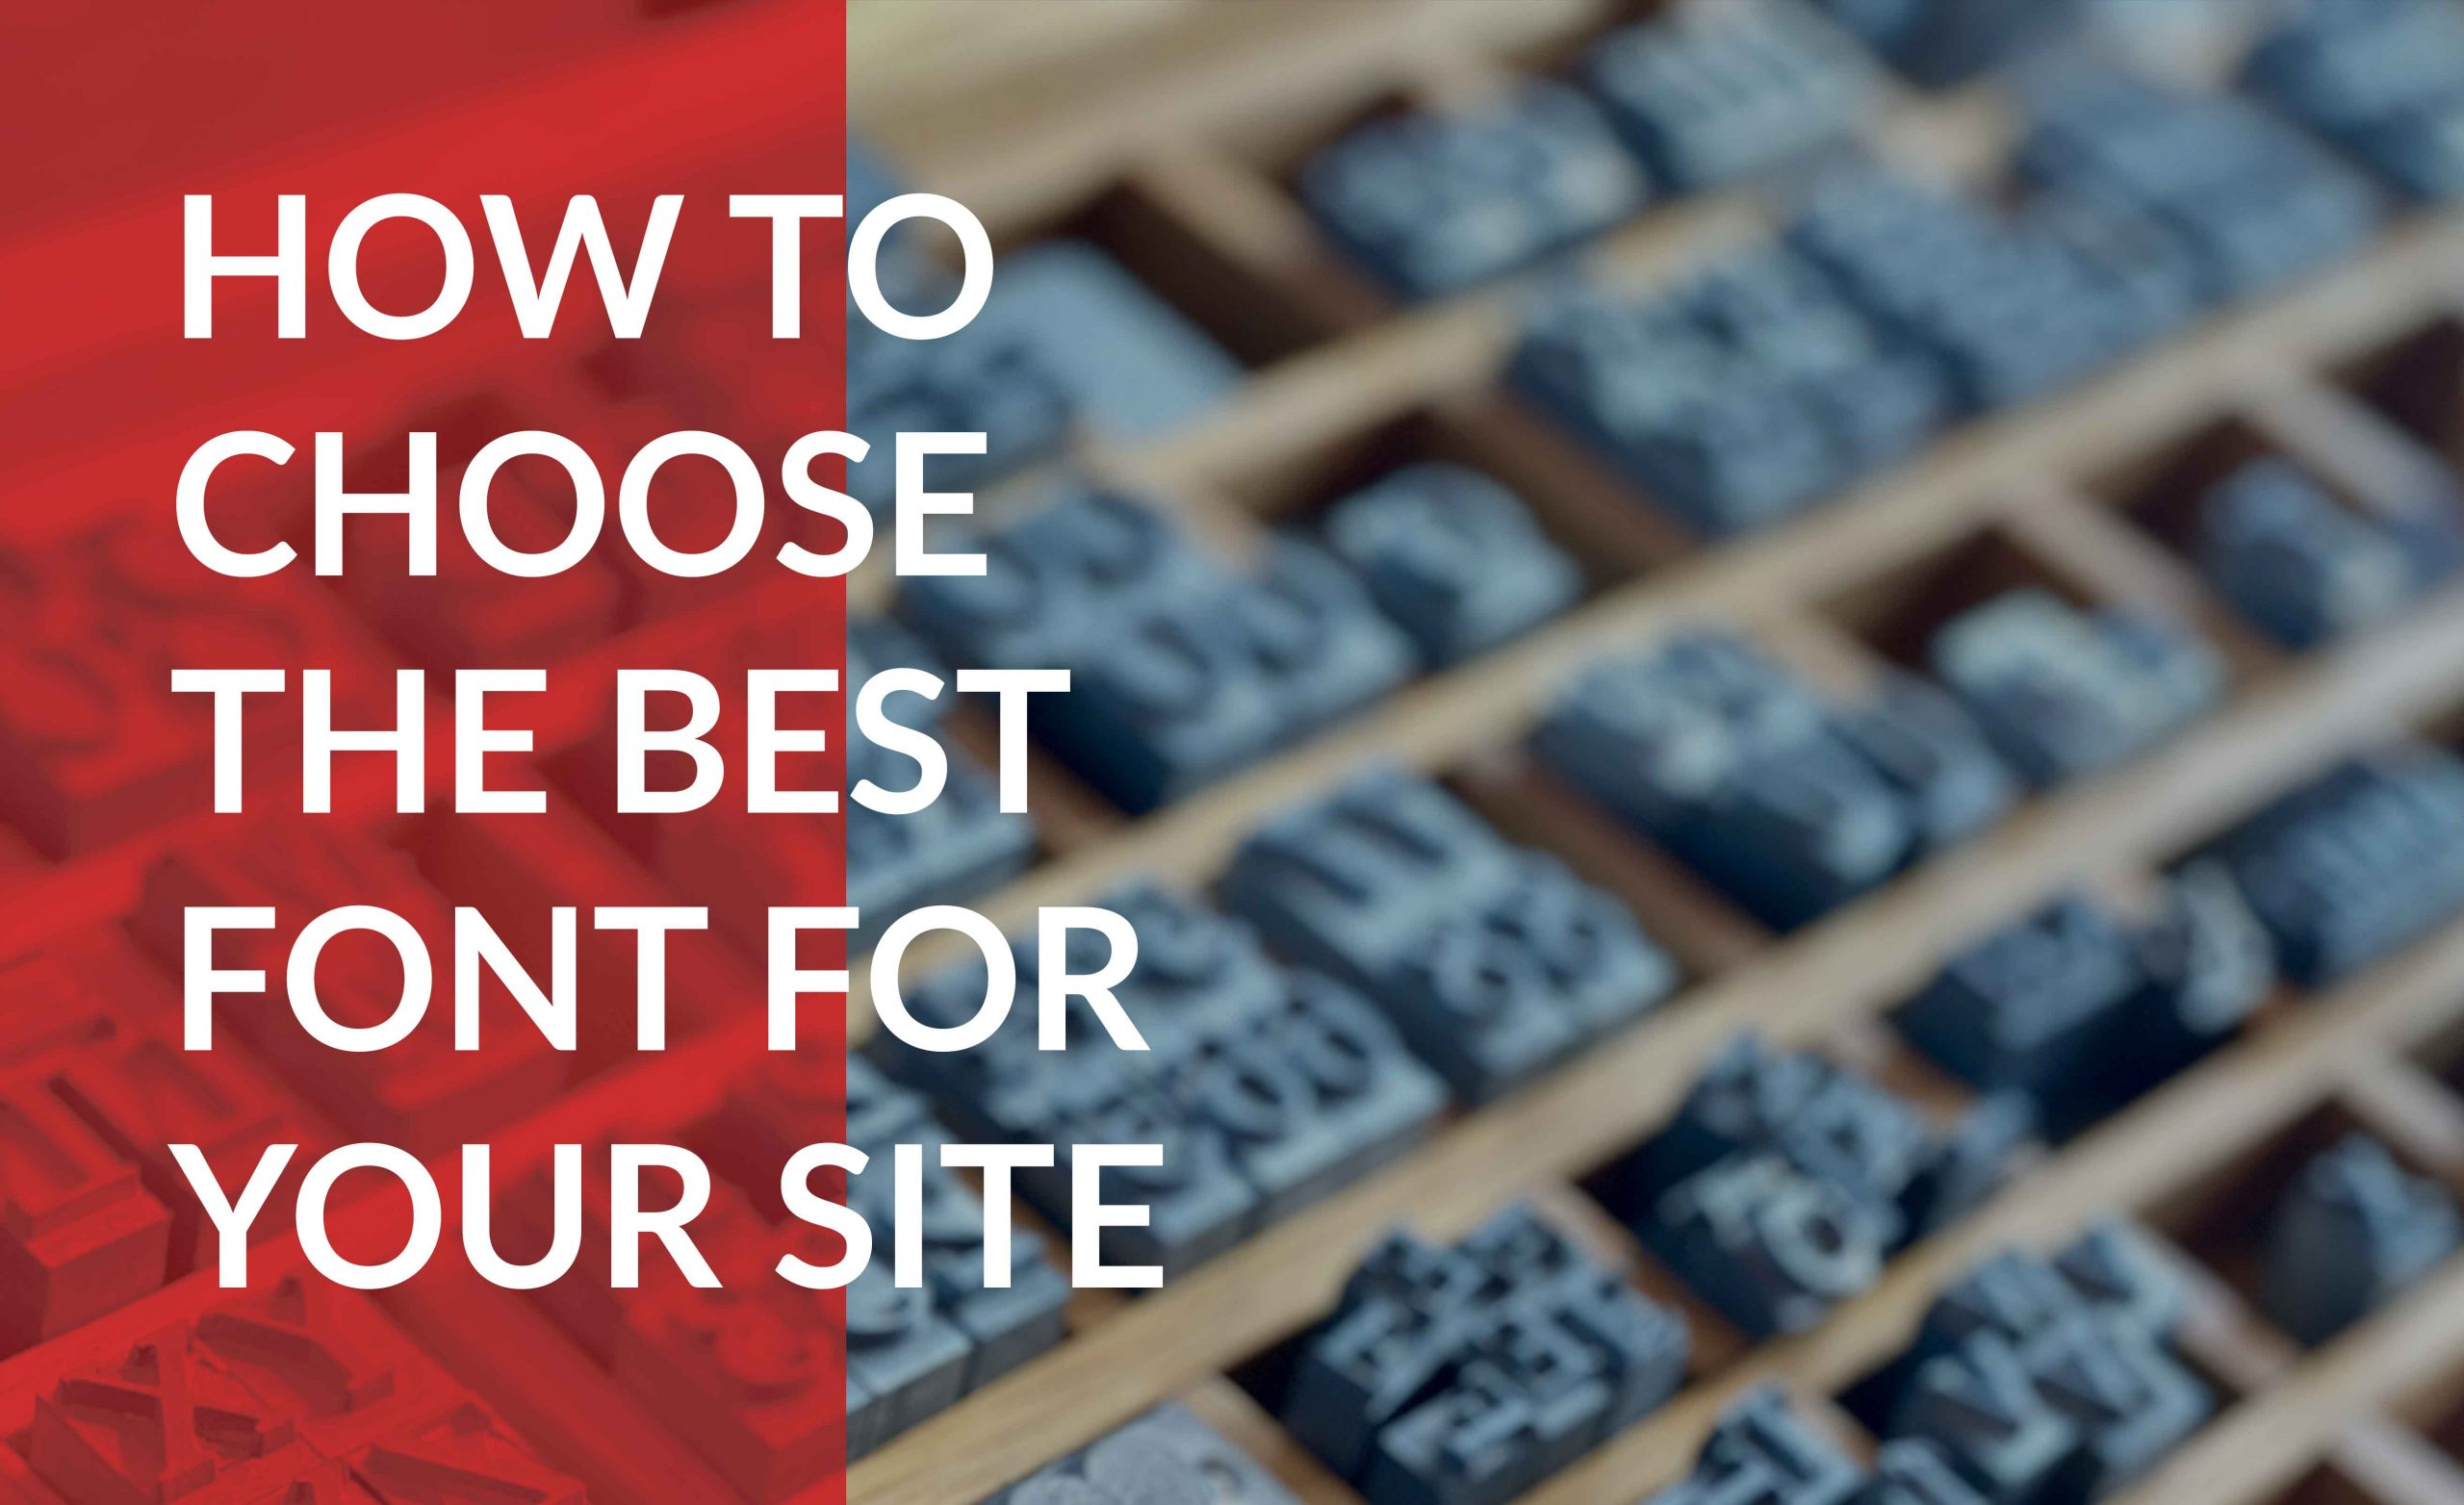 choosing the best font for your site